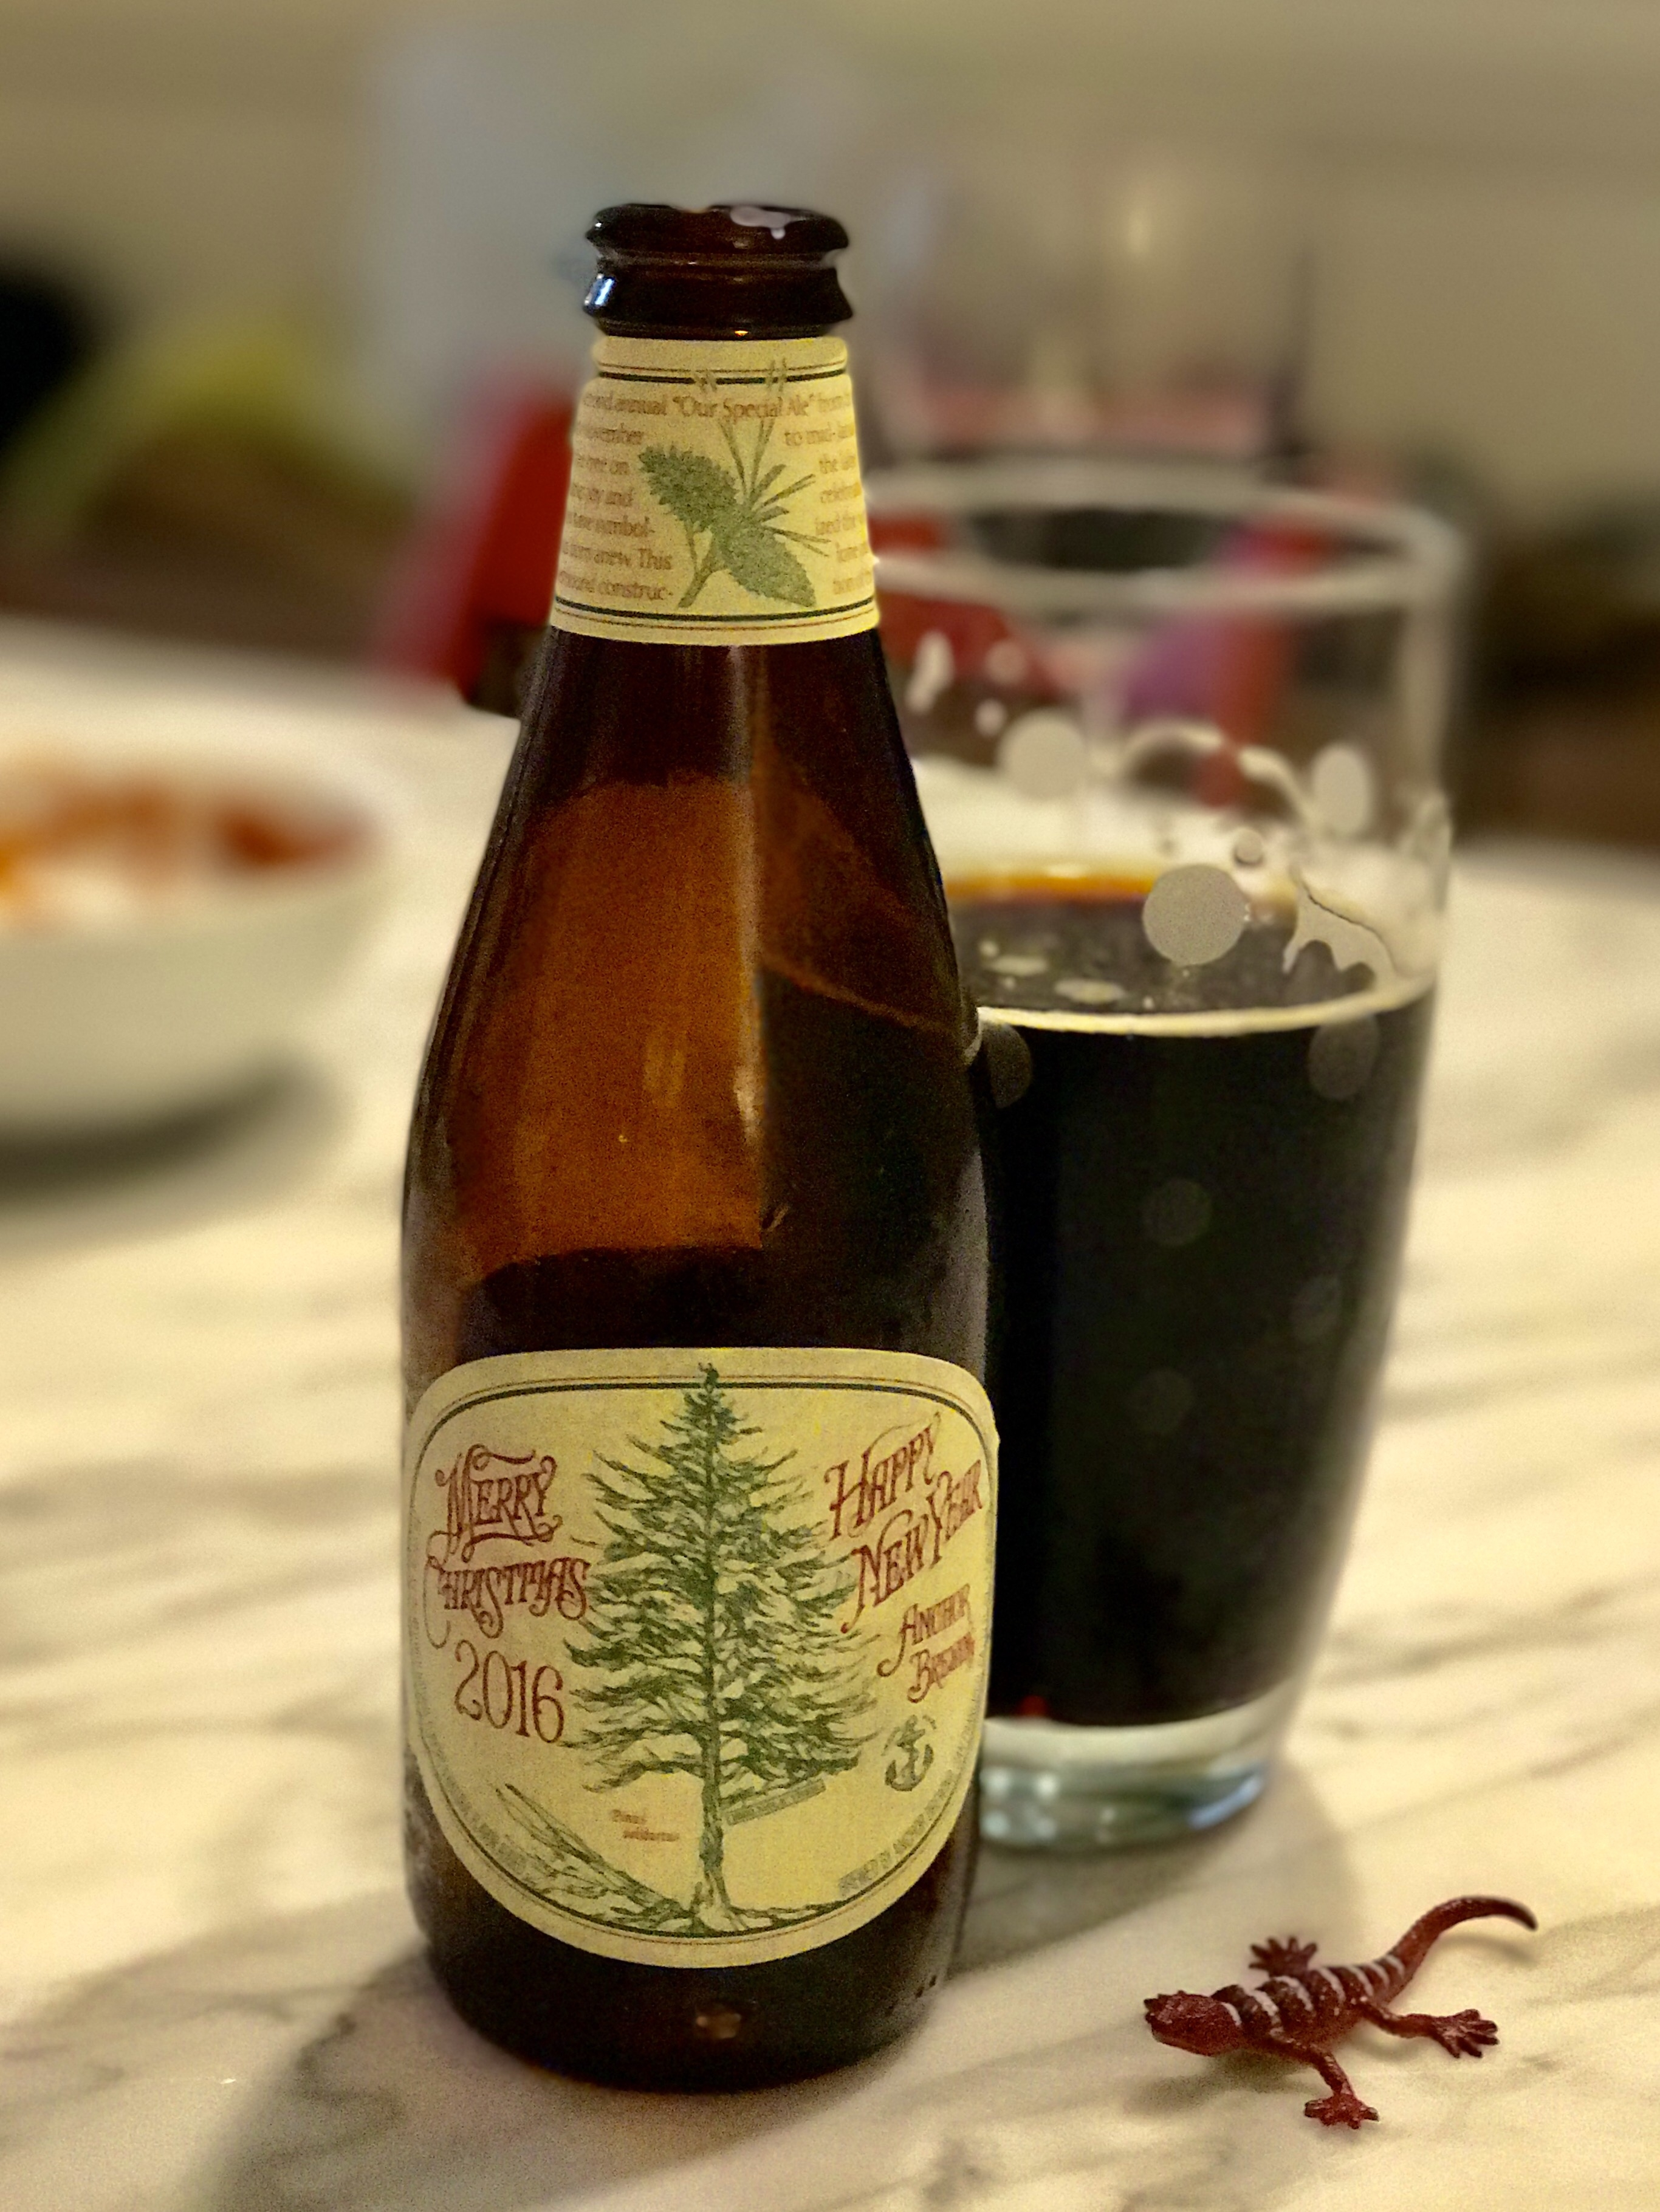 November 29th Dinner At Kelsey And Petes Drinking Holly Kays Favorite Anchor Brewing Merry Christmas And Happy New Year 2016 Notes Of Caramel Plum